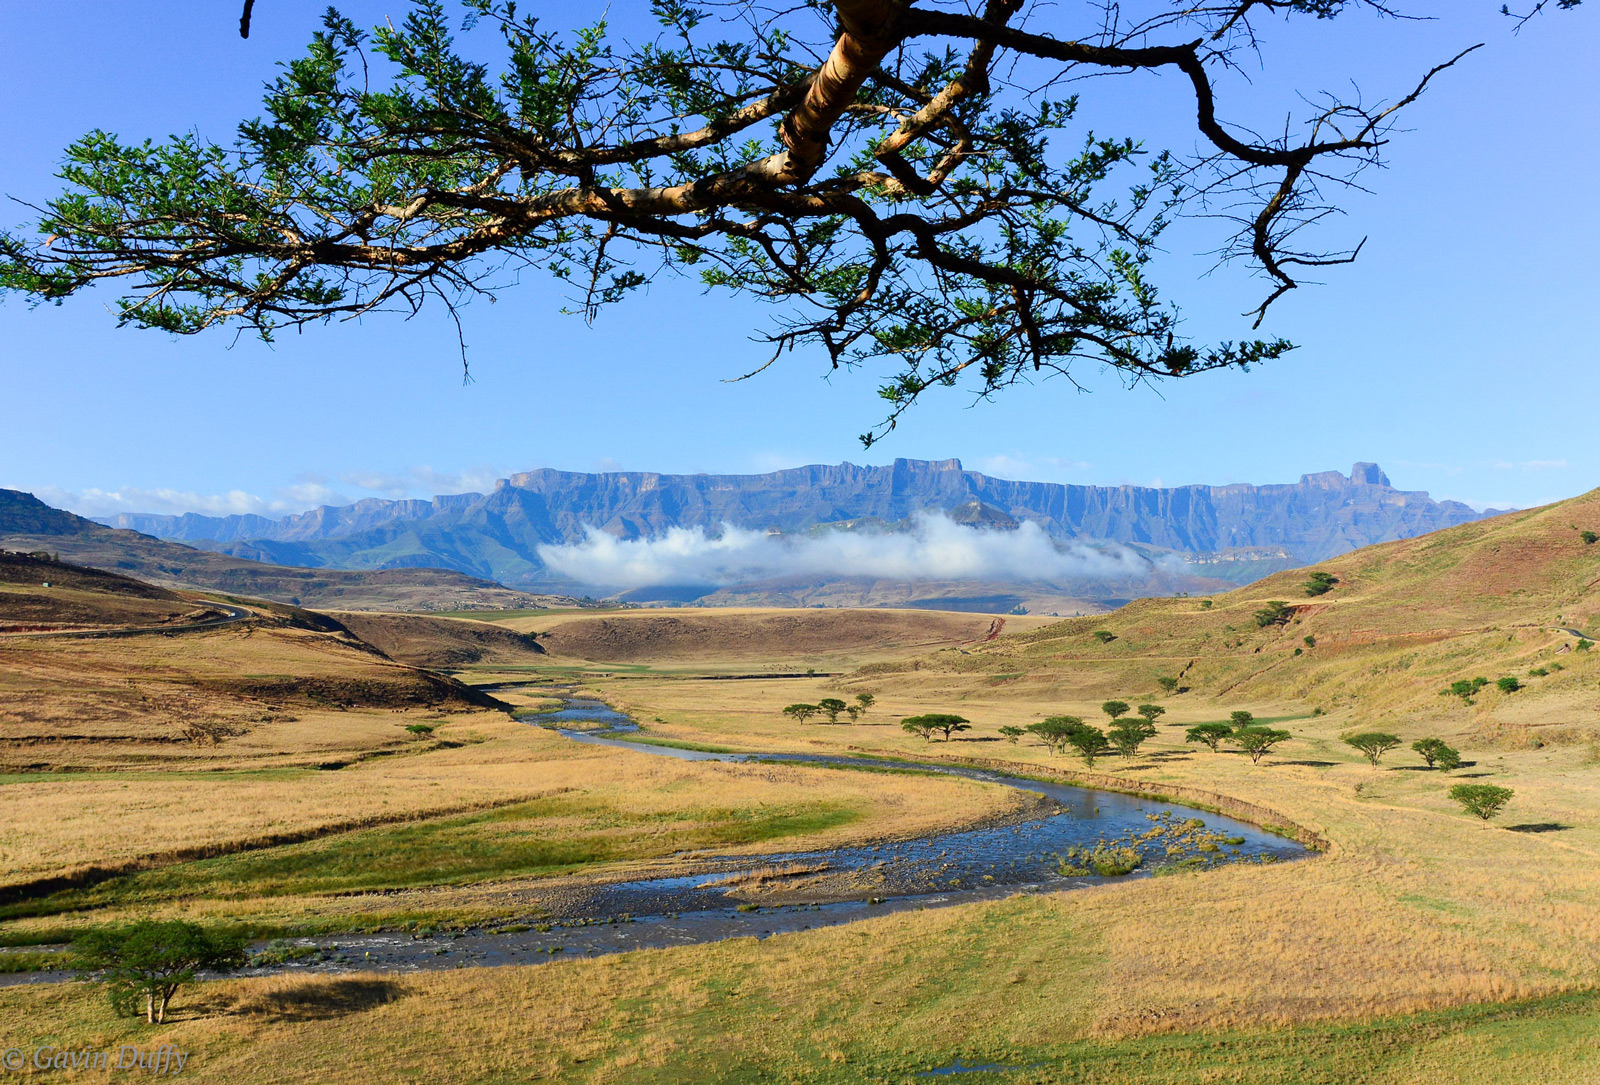 View of the Drakensburg Amphitheatre. Royal Natal National Park, South Africa © Gavin Duffy